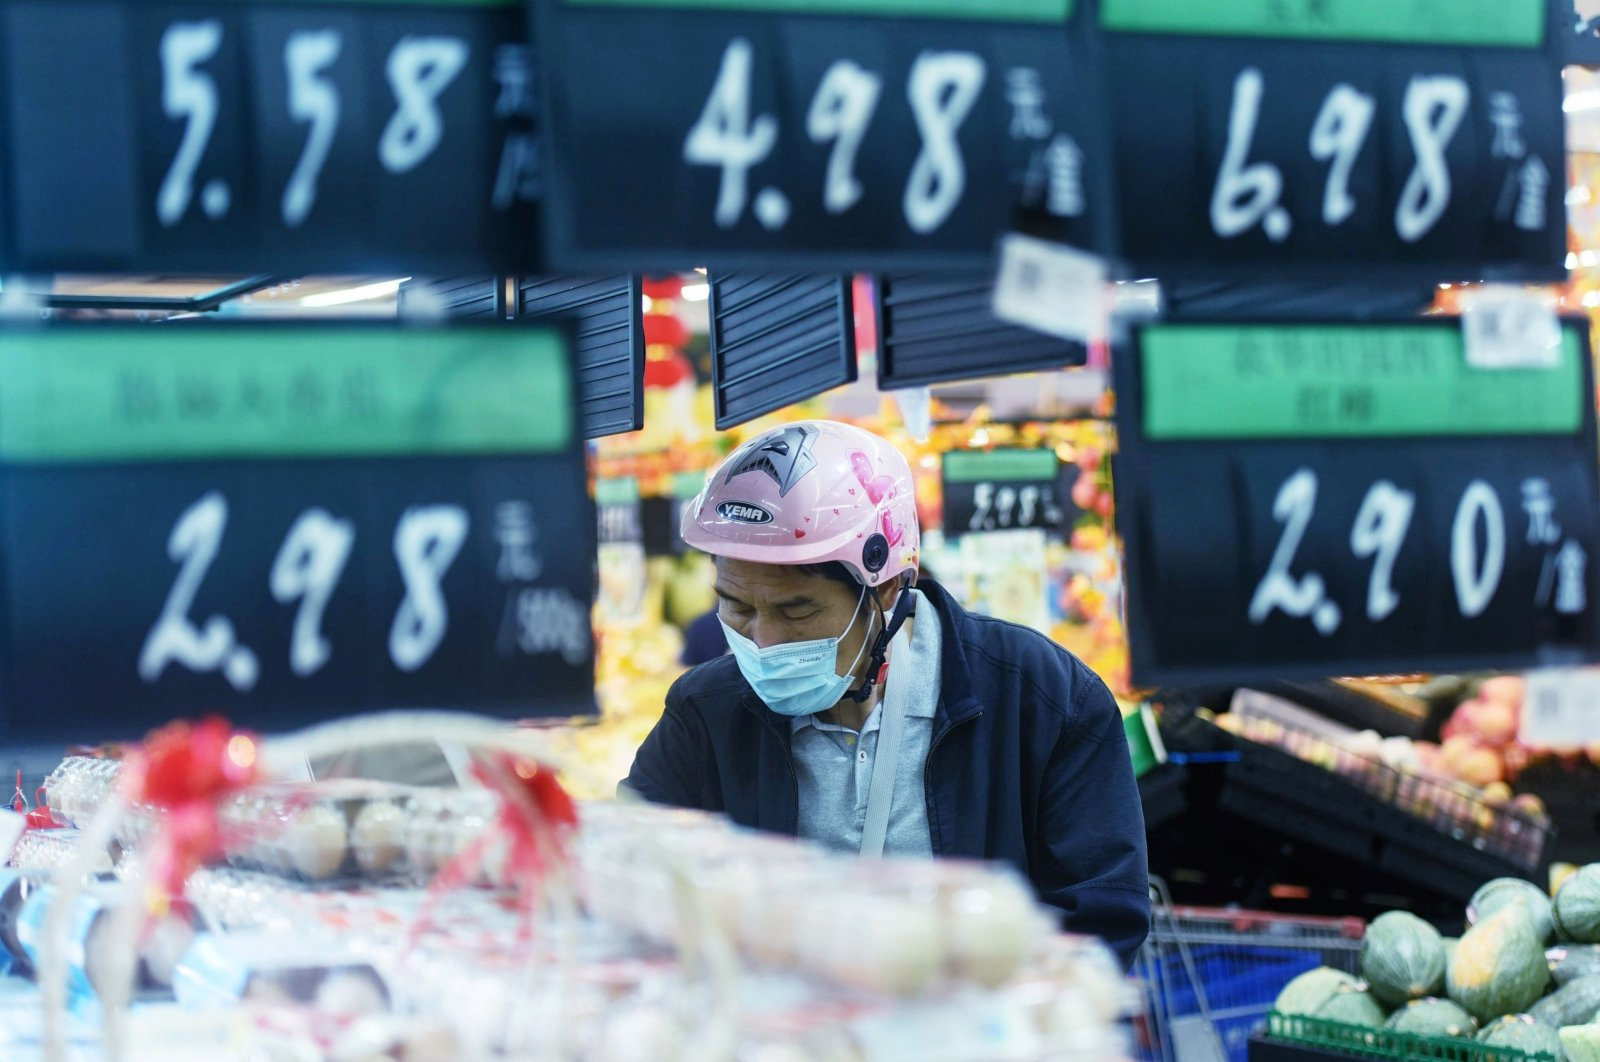 A customer wearing a face mask shops at a supermarket in Hangzhou in eastern China's Zhejiang Province, Oct. 15, 2020. (AFP Photo)